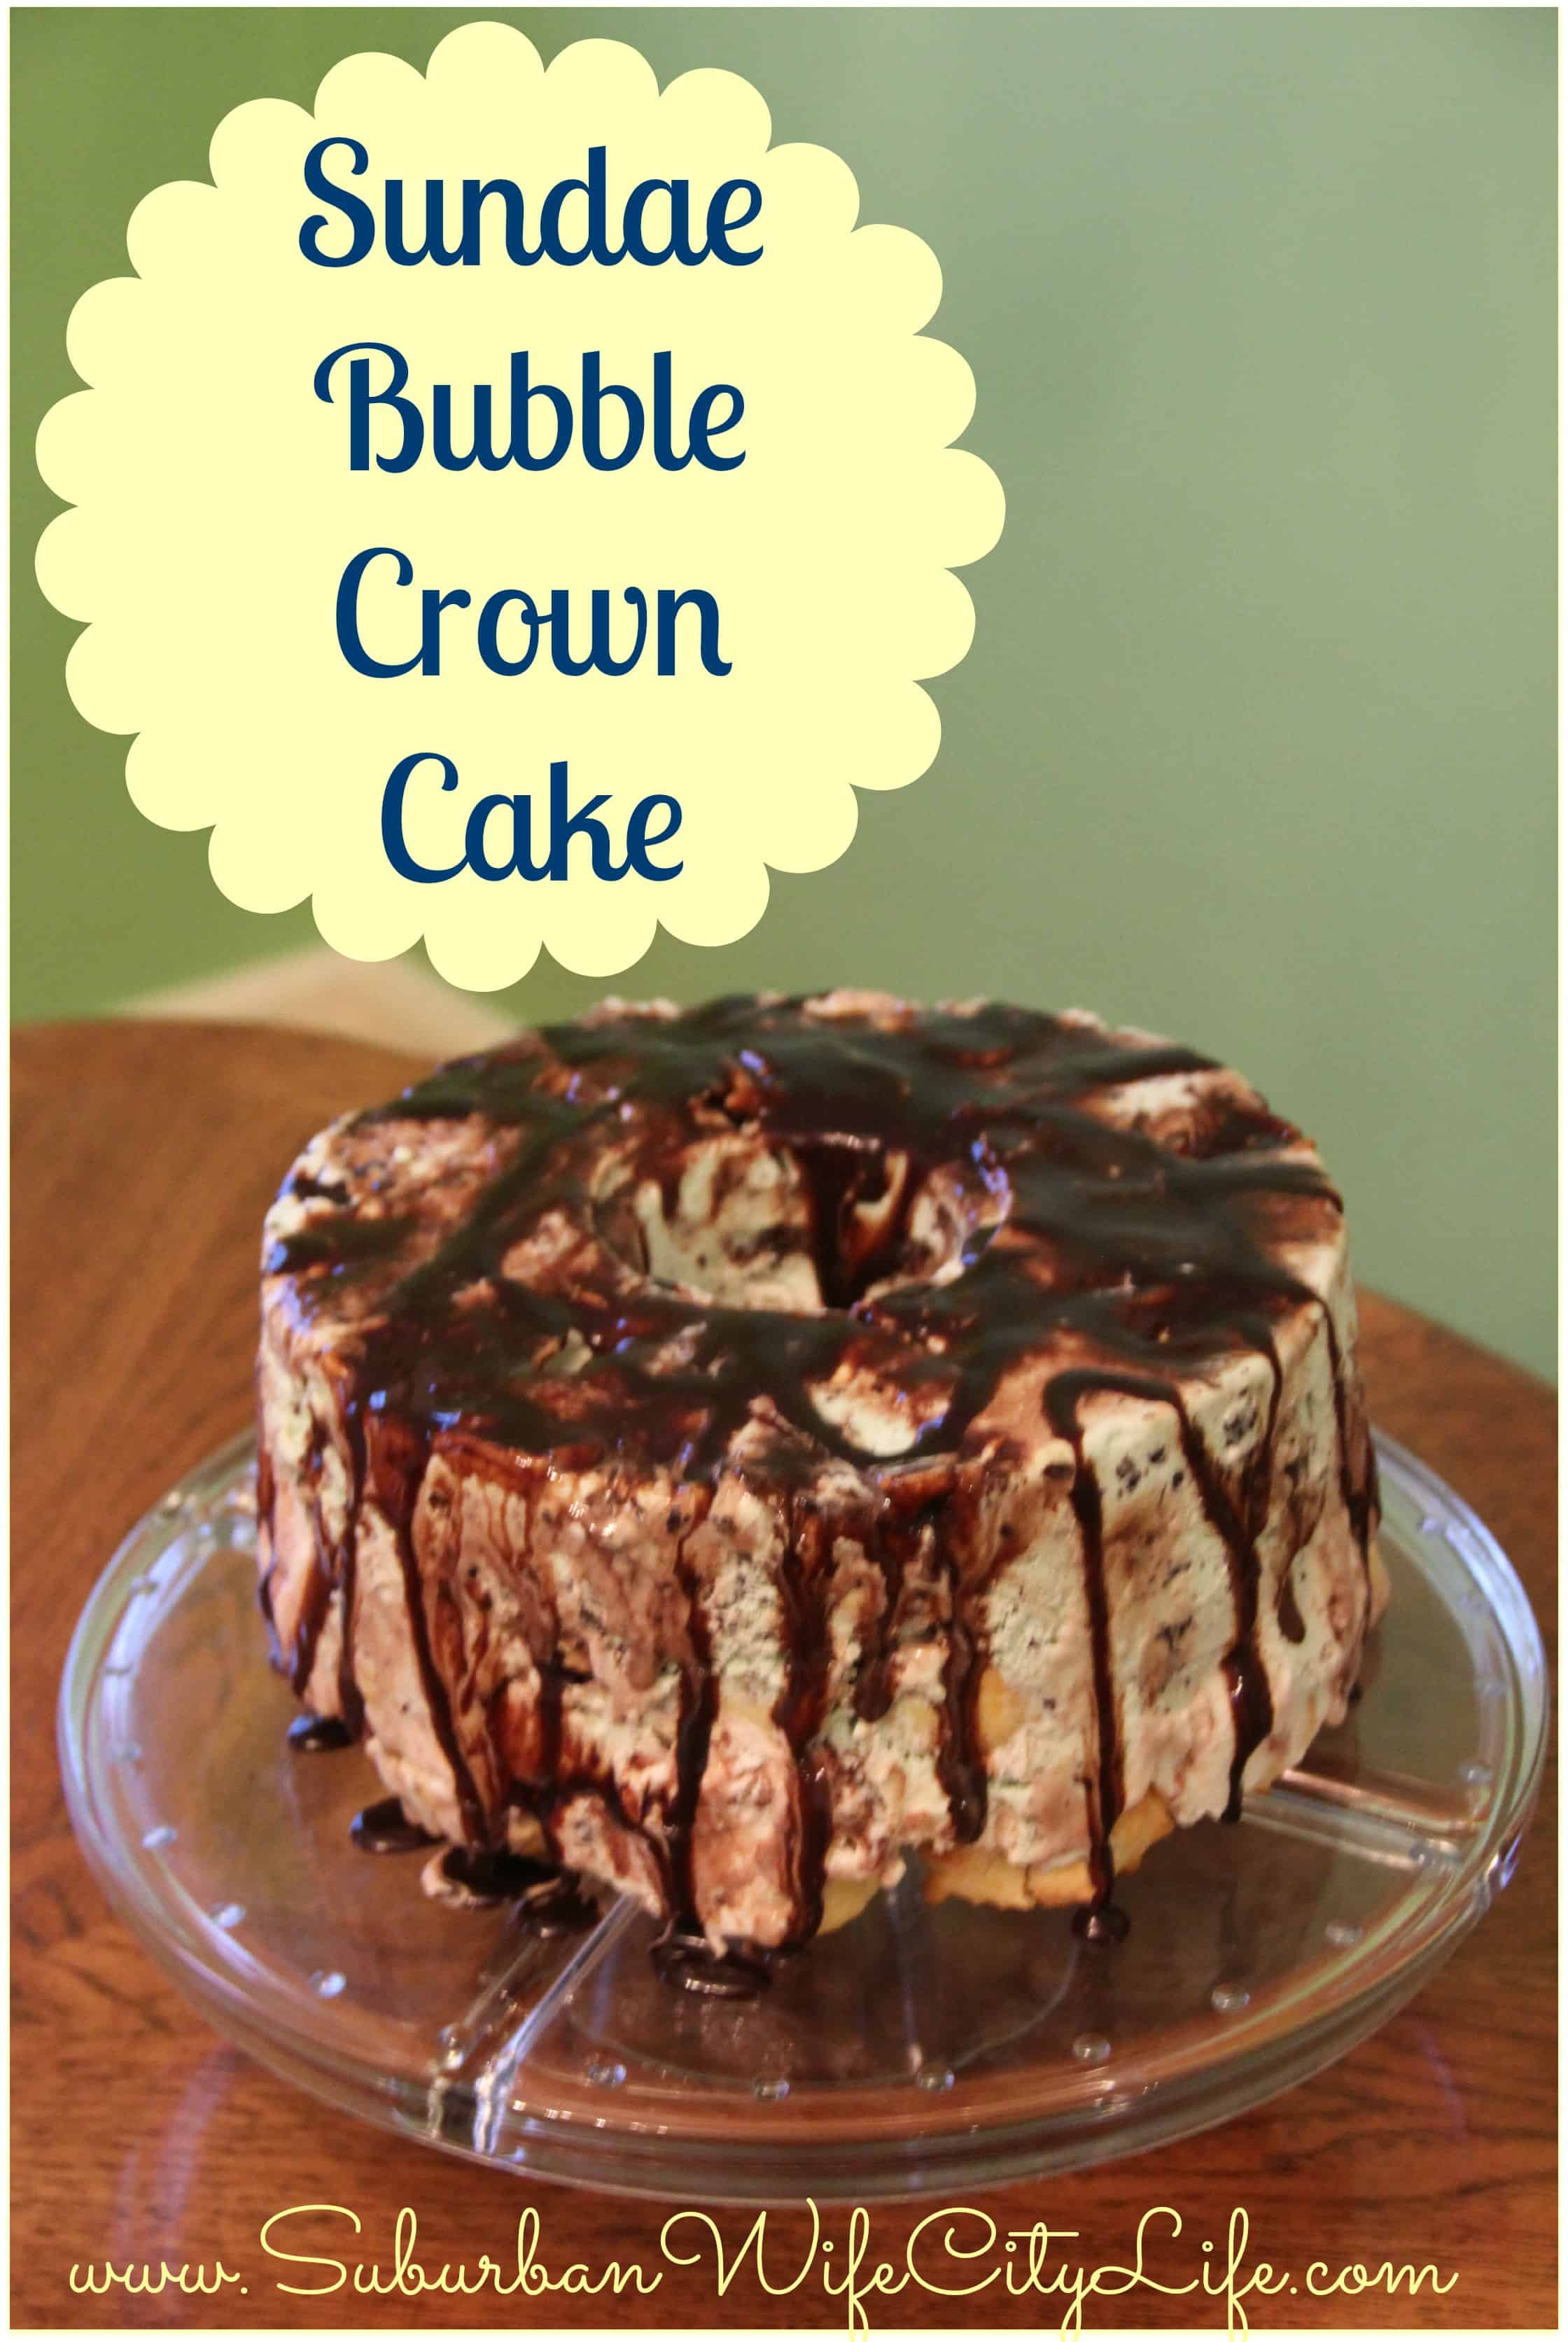 Sundae Bubble Crown Cake